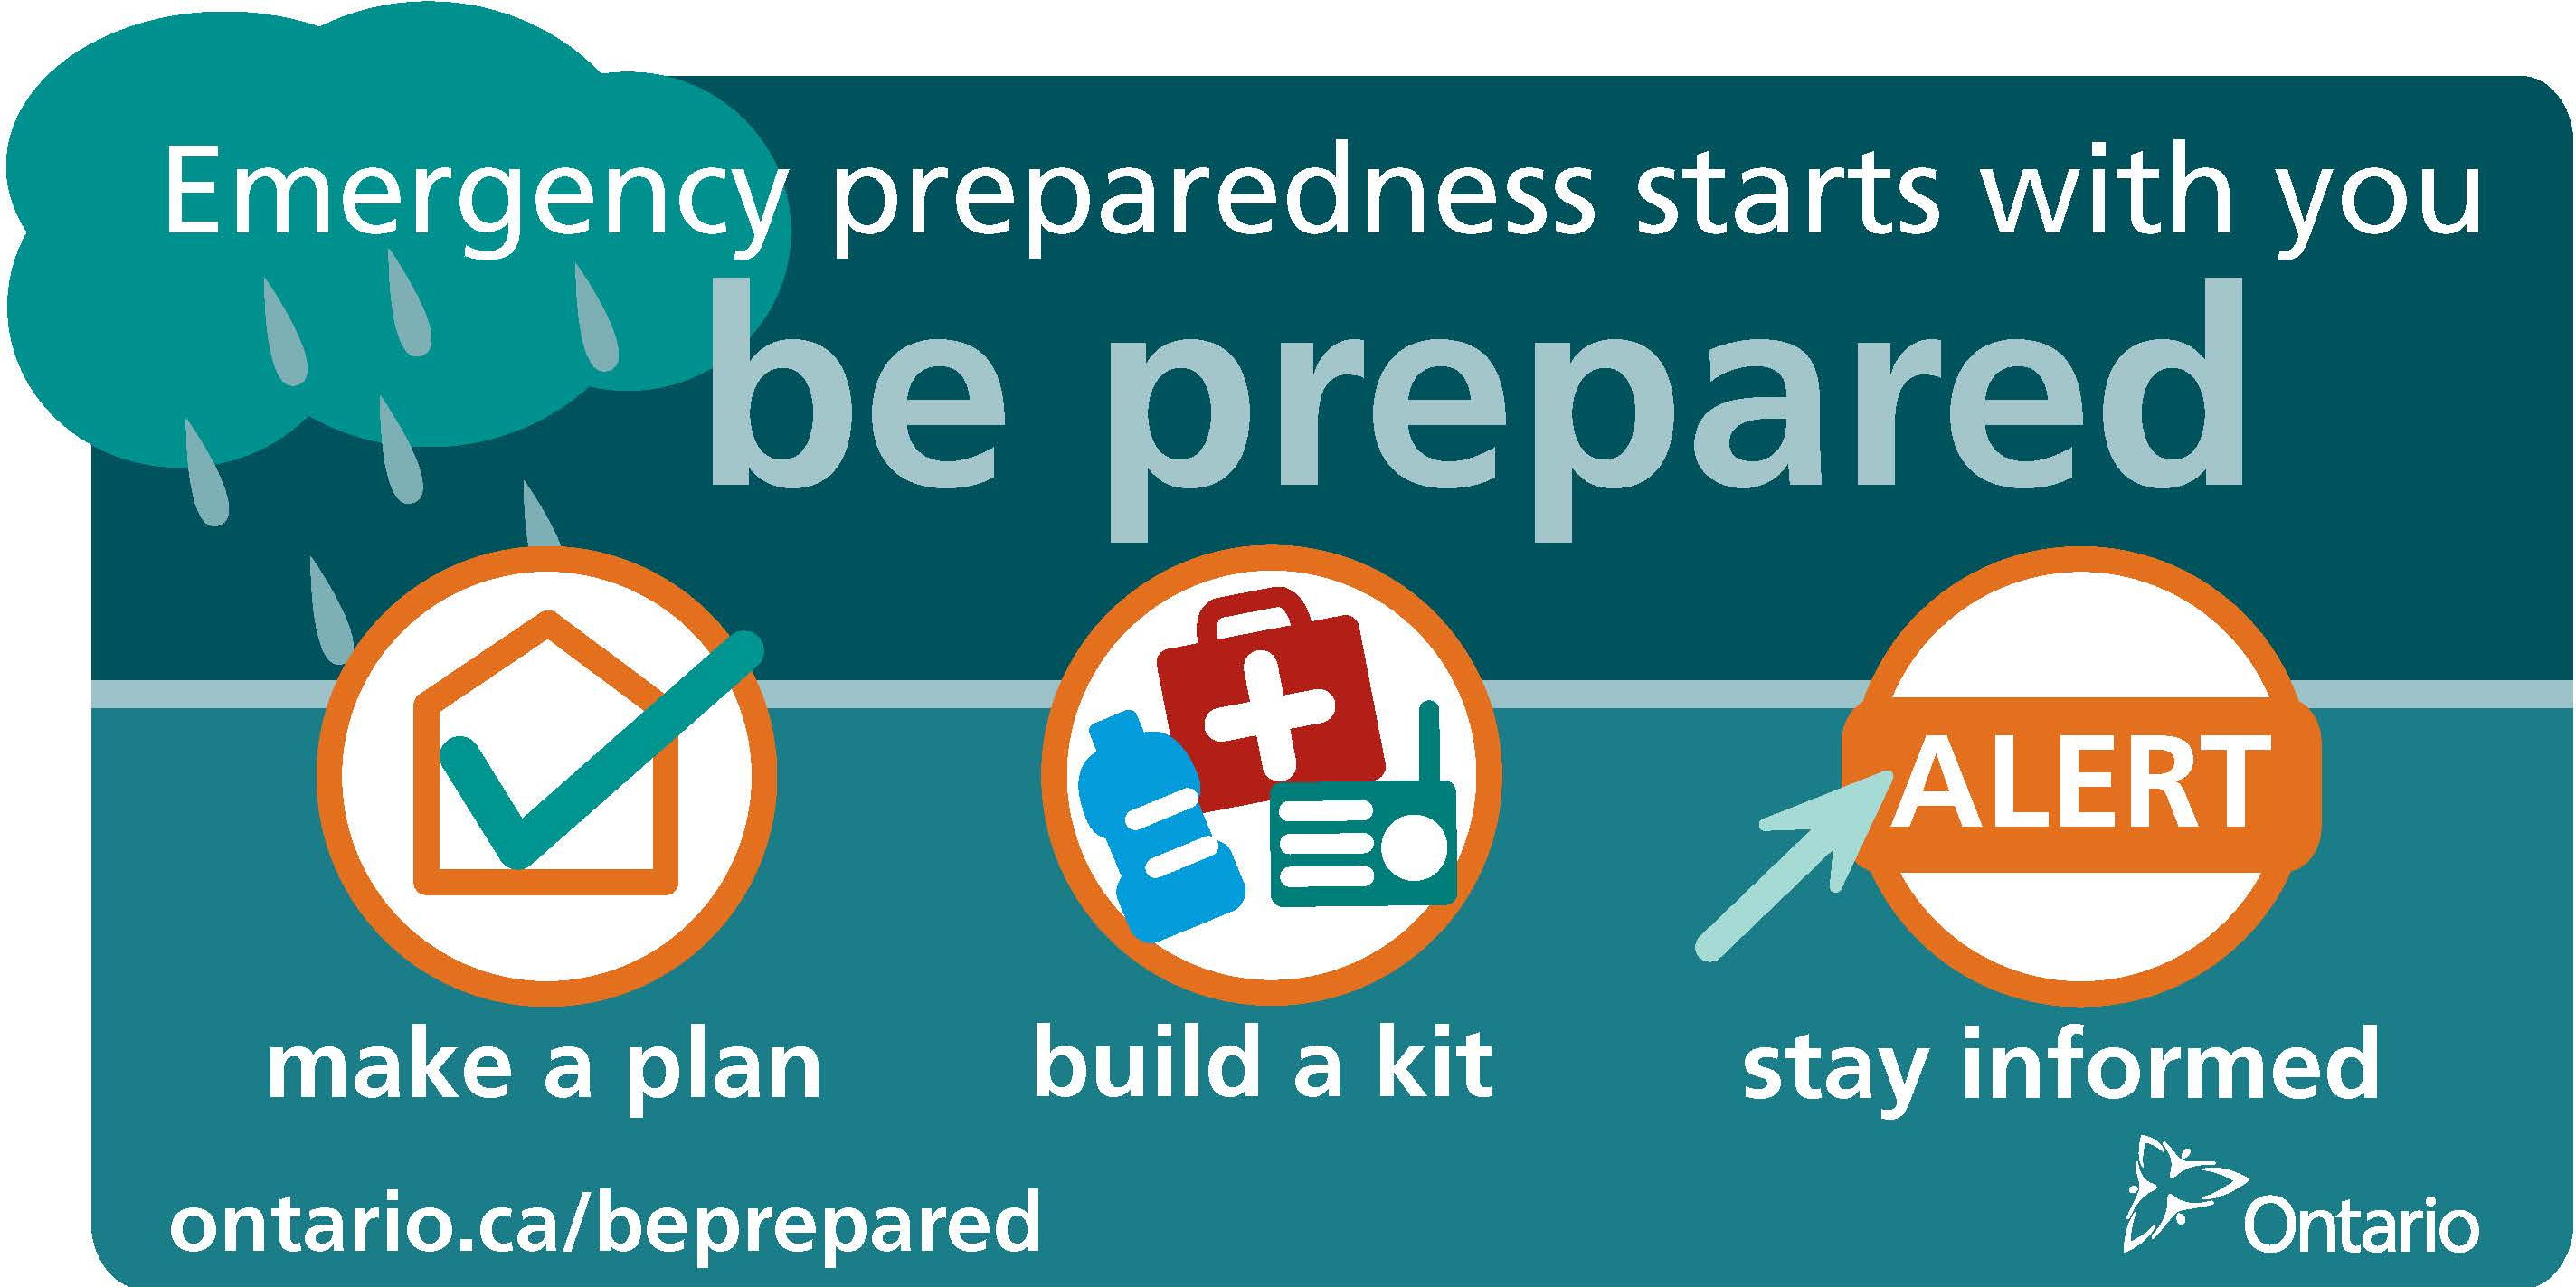 Link to Ontario Government Page on Emergency Preparedness